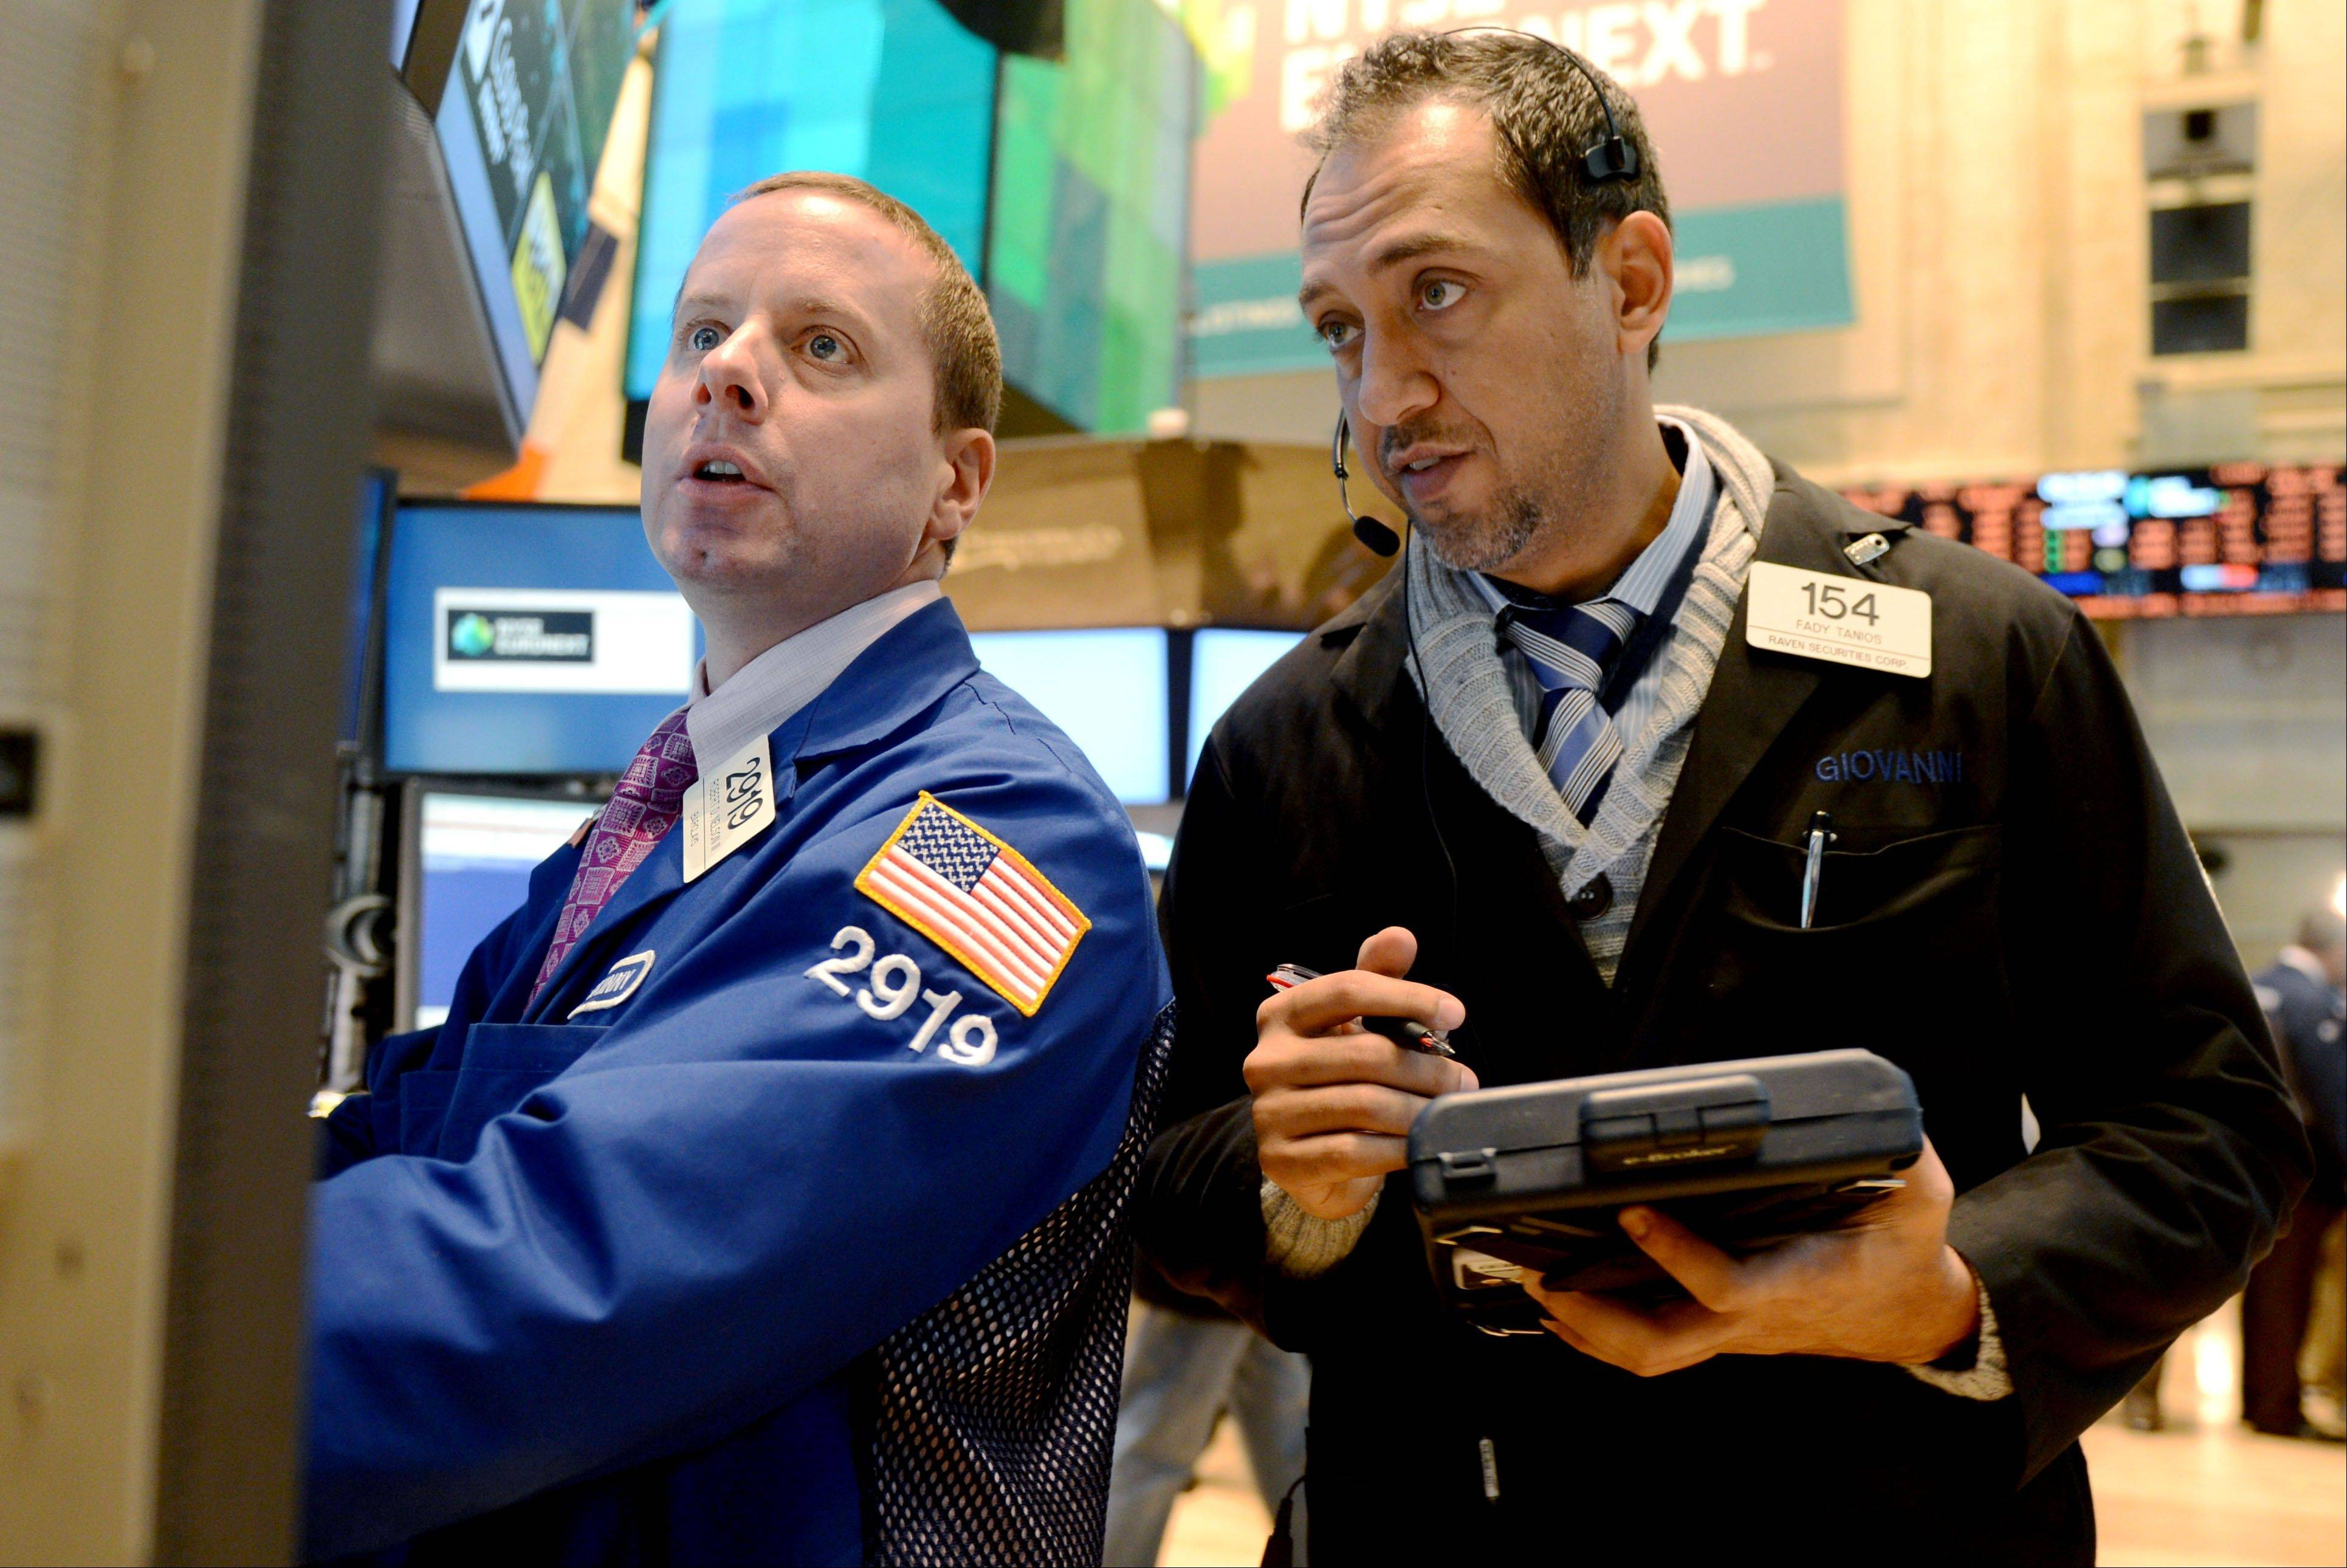 Robert Nelson II of Barclays, left, and Fady Tanios of Raven Securities work on the floor of the New York Stock Exchange, Thursday in New York.